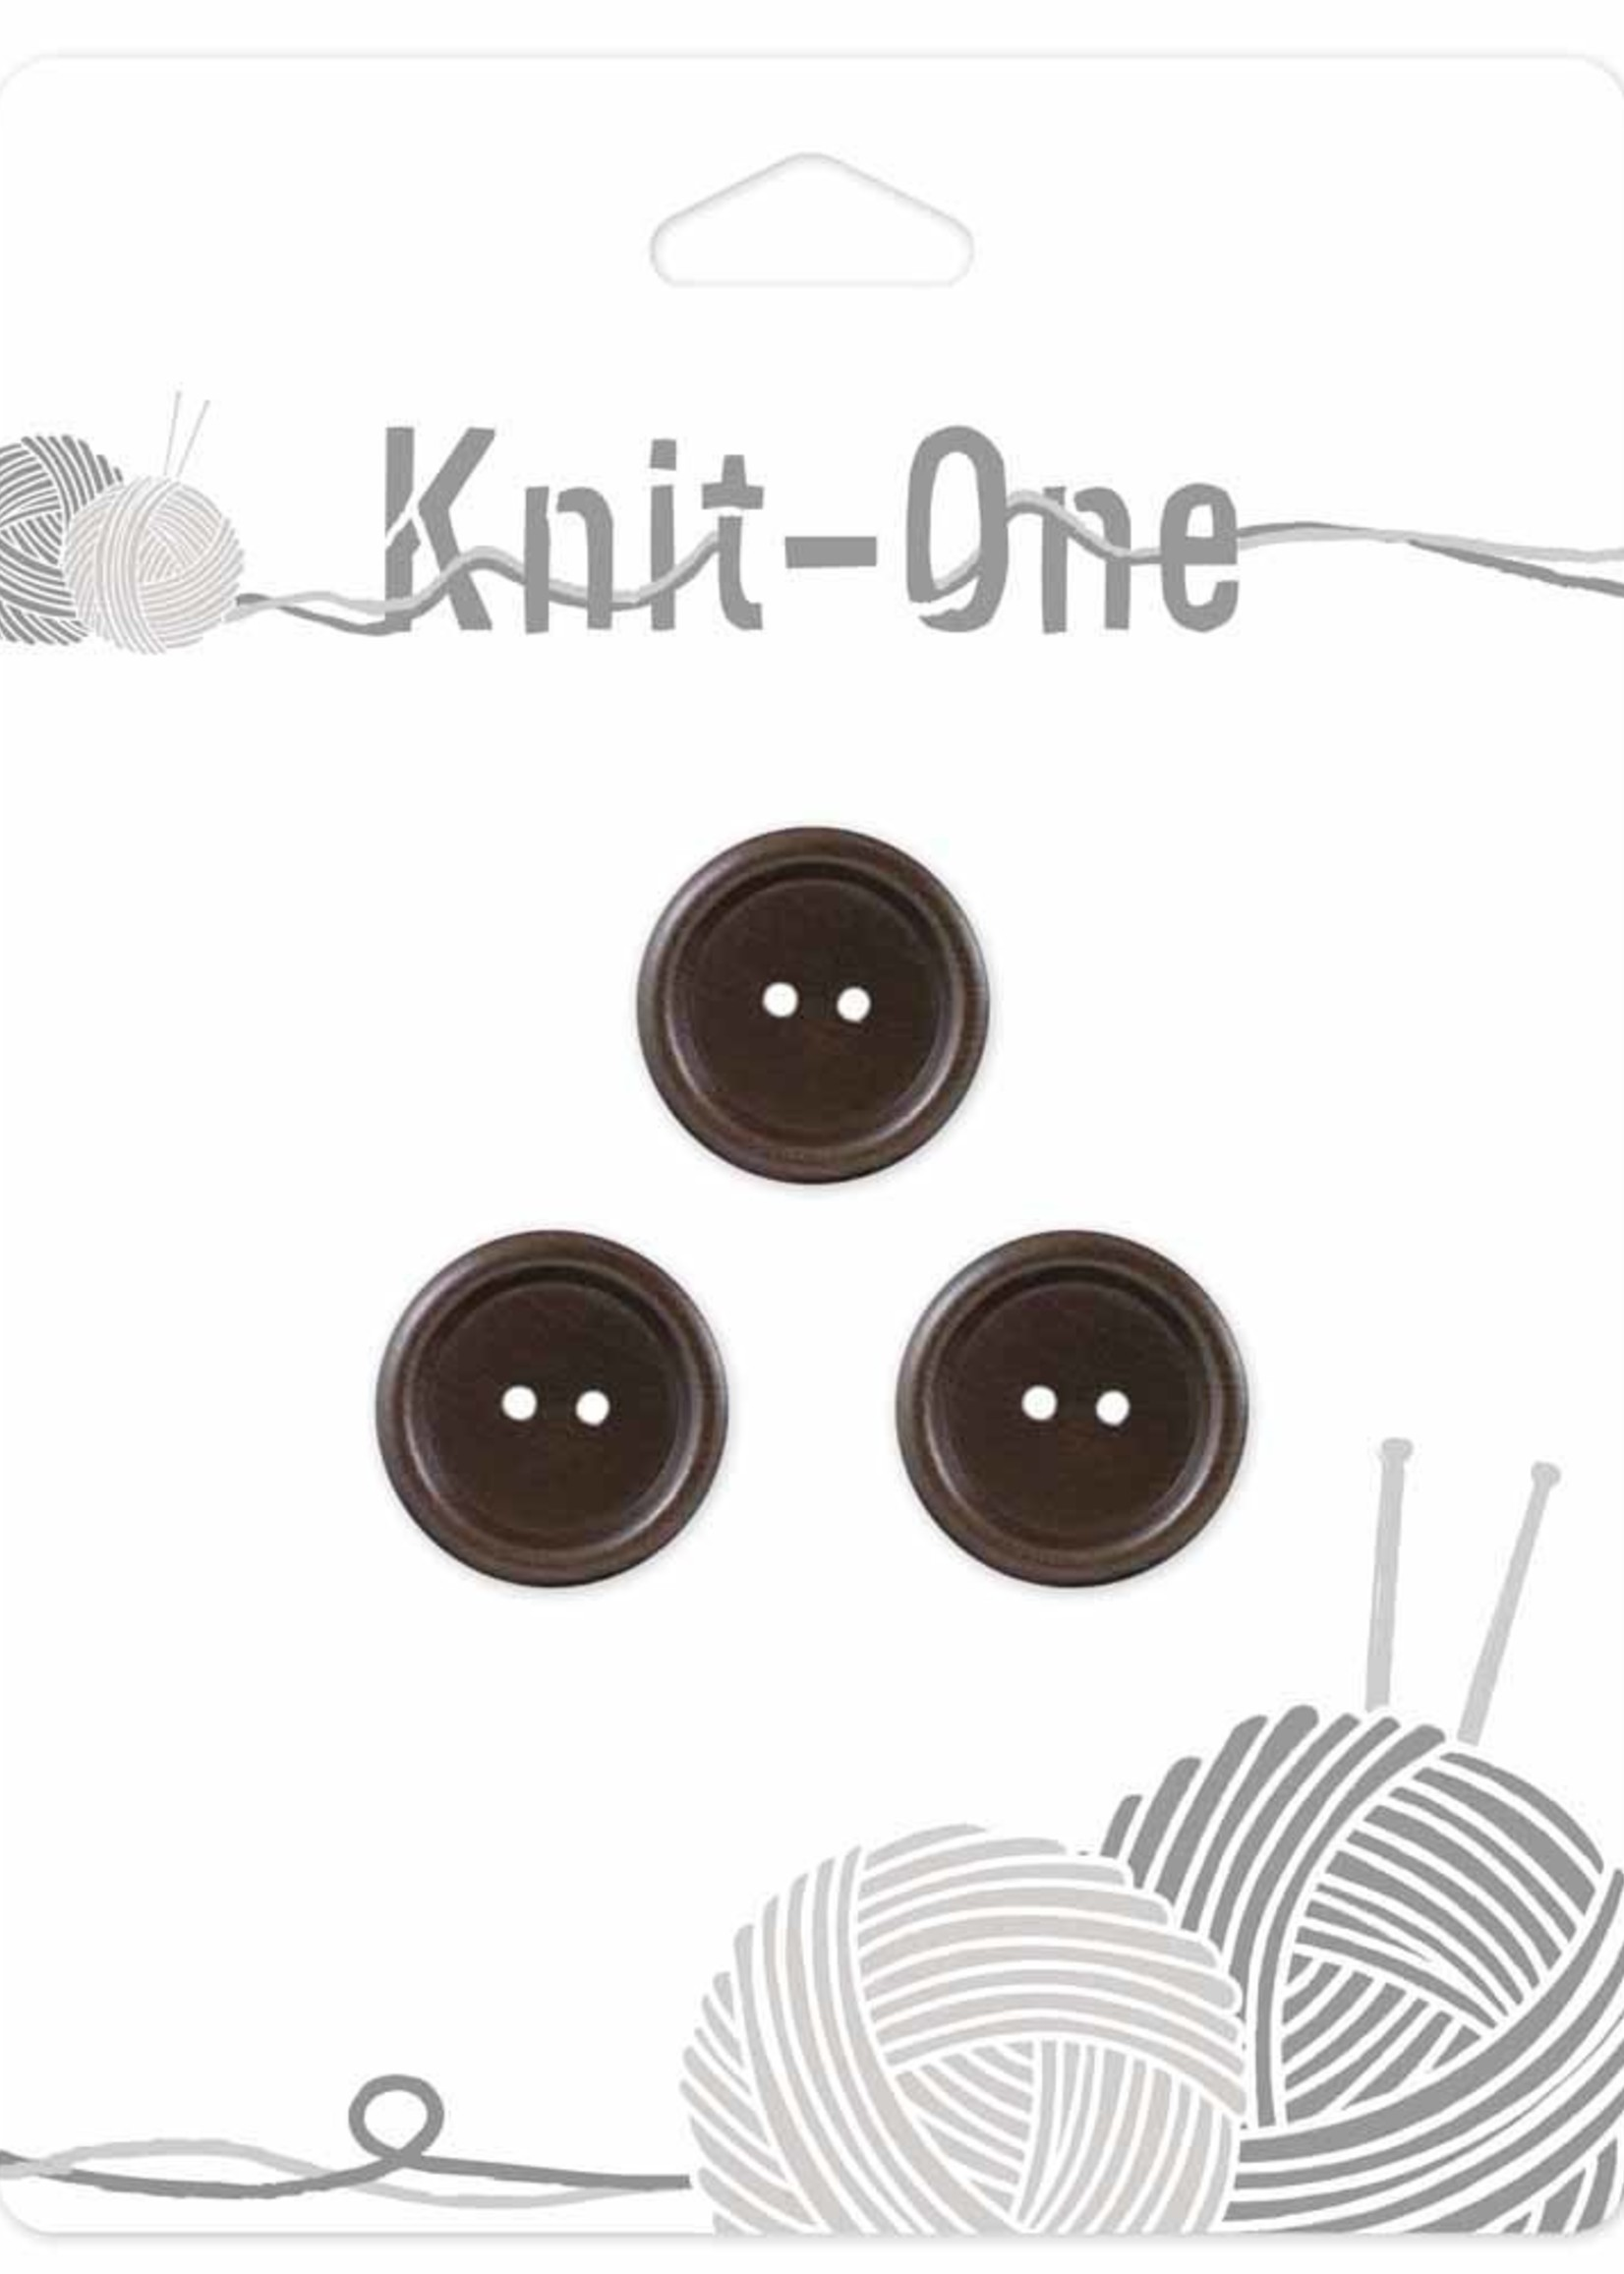 Knit-One Knit-One Button - 2 Hole Wood Button - 18mm (3⁄4″) - Brown